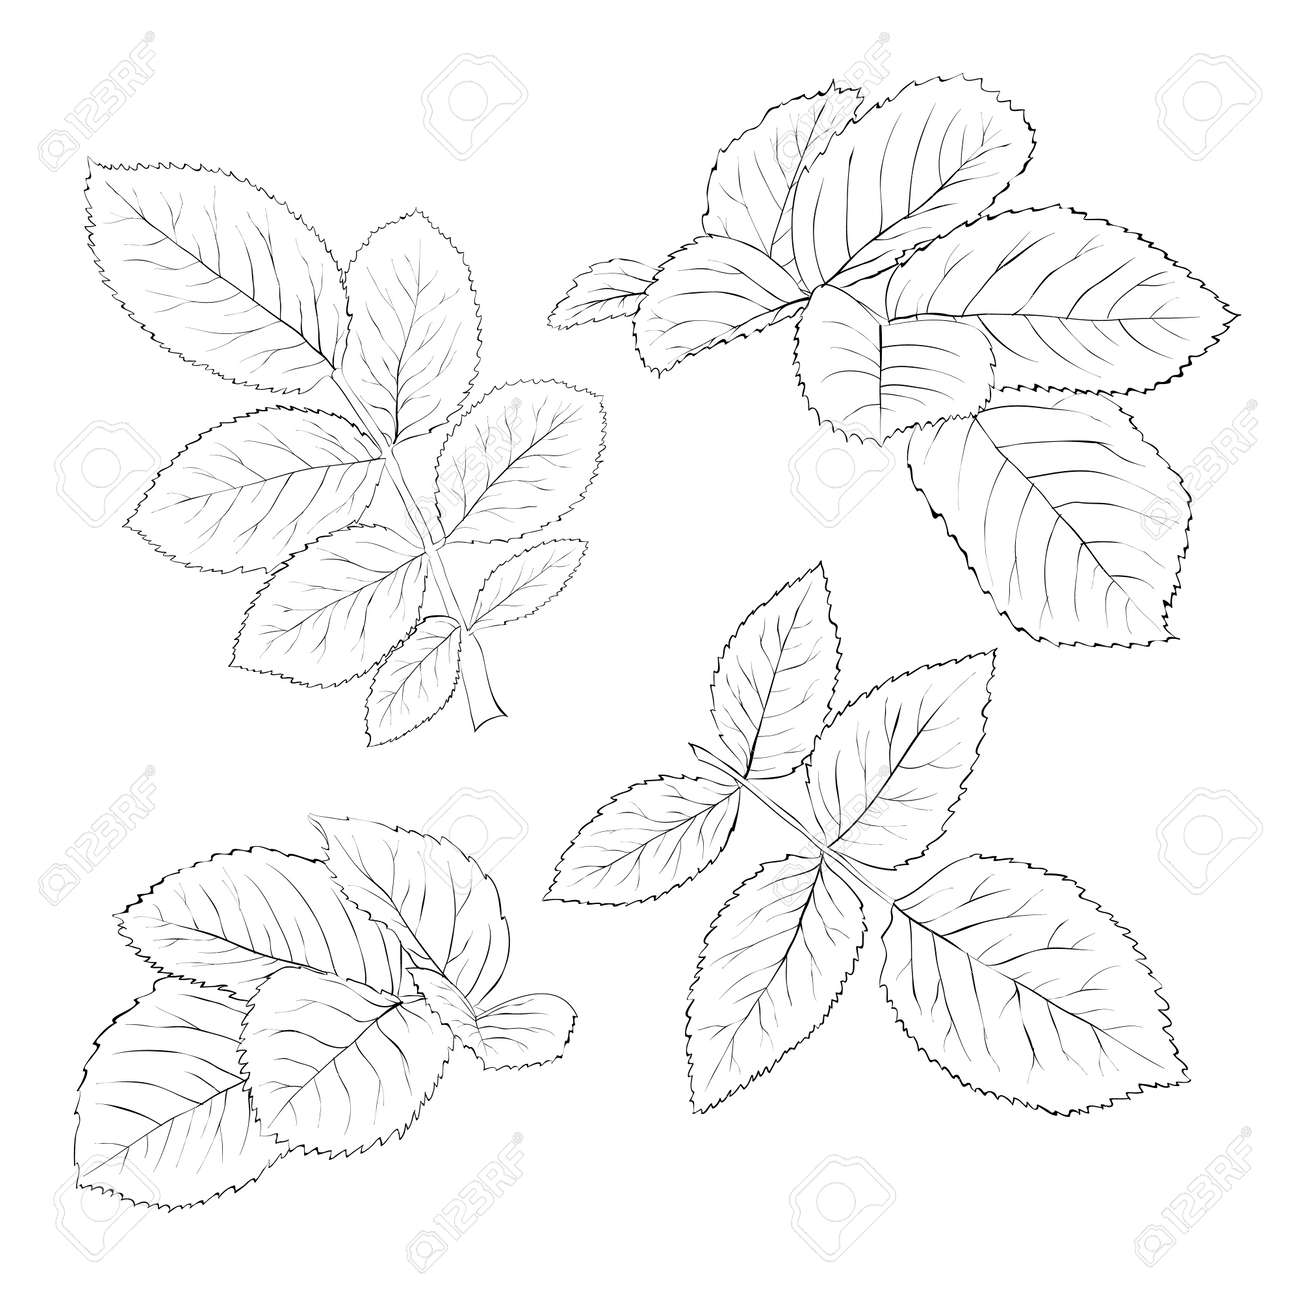 set of beautiful black and white rose leaves isolated on white. Hand-drawn contour lines and strokes. - 30147717